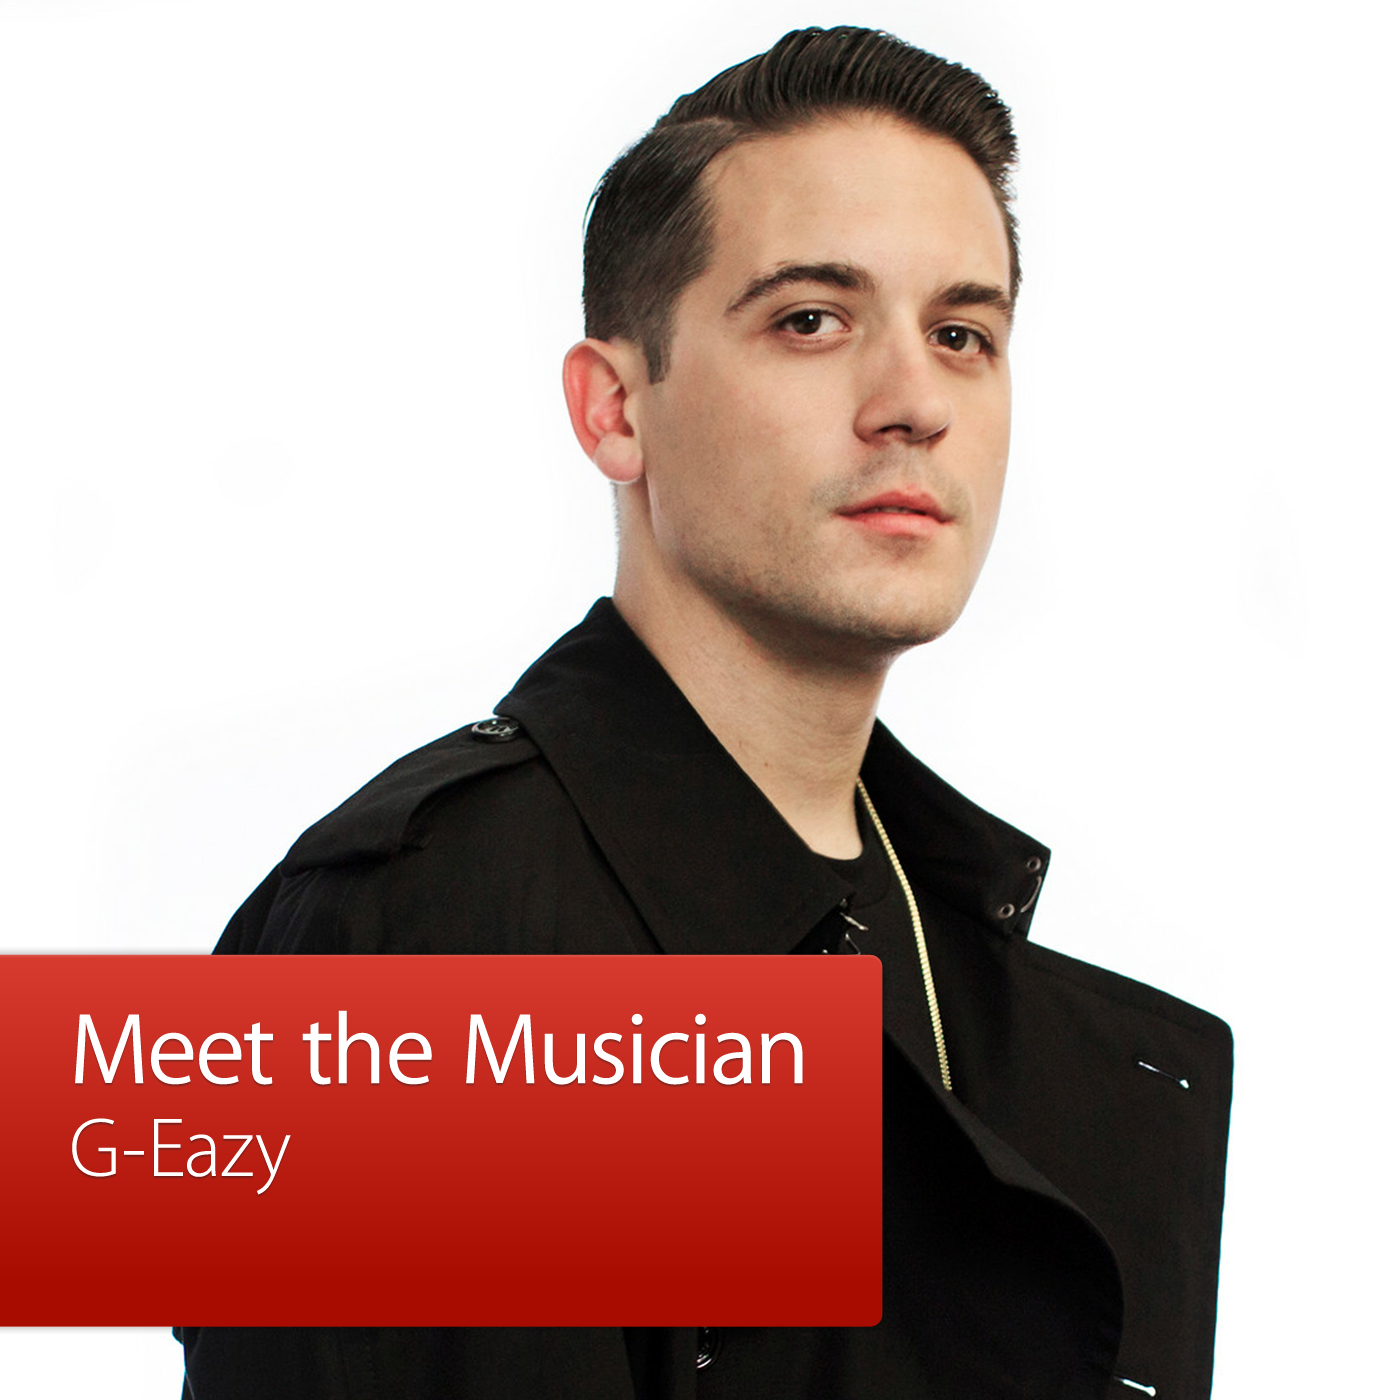 G-Eazy: Meet the Musician